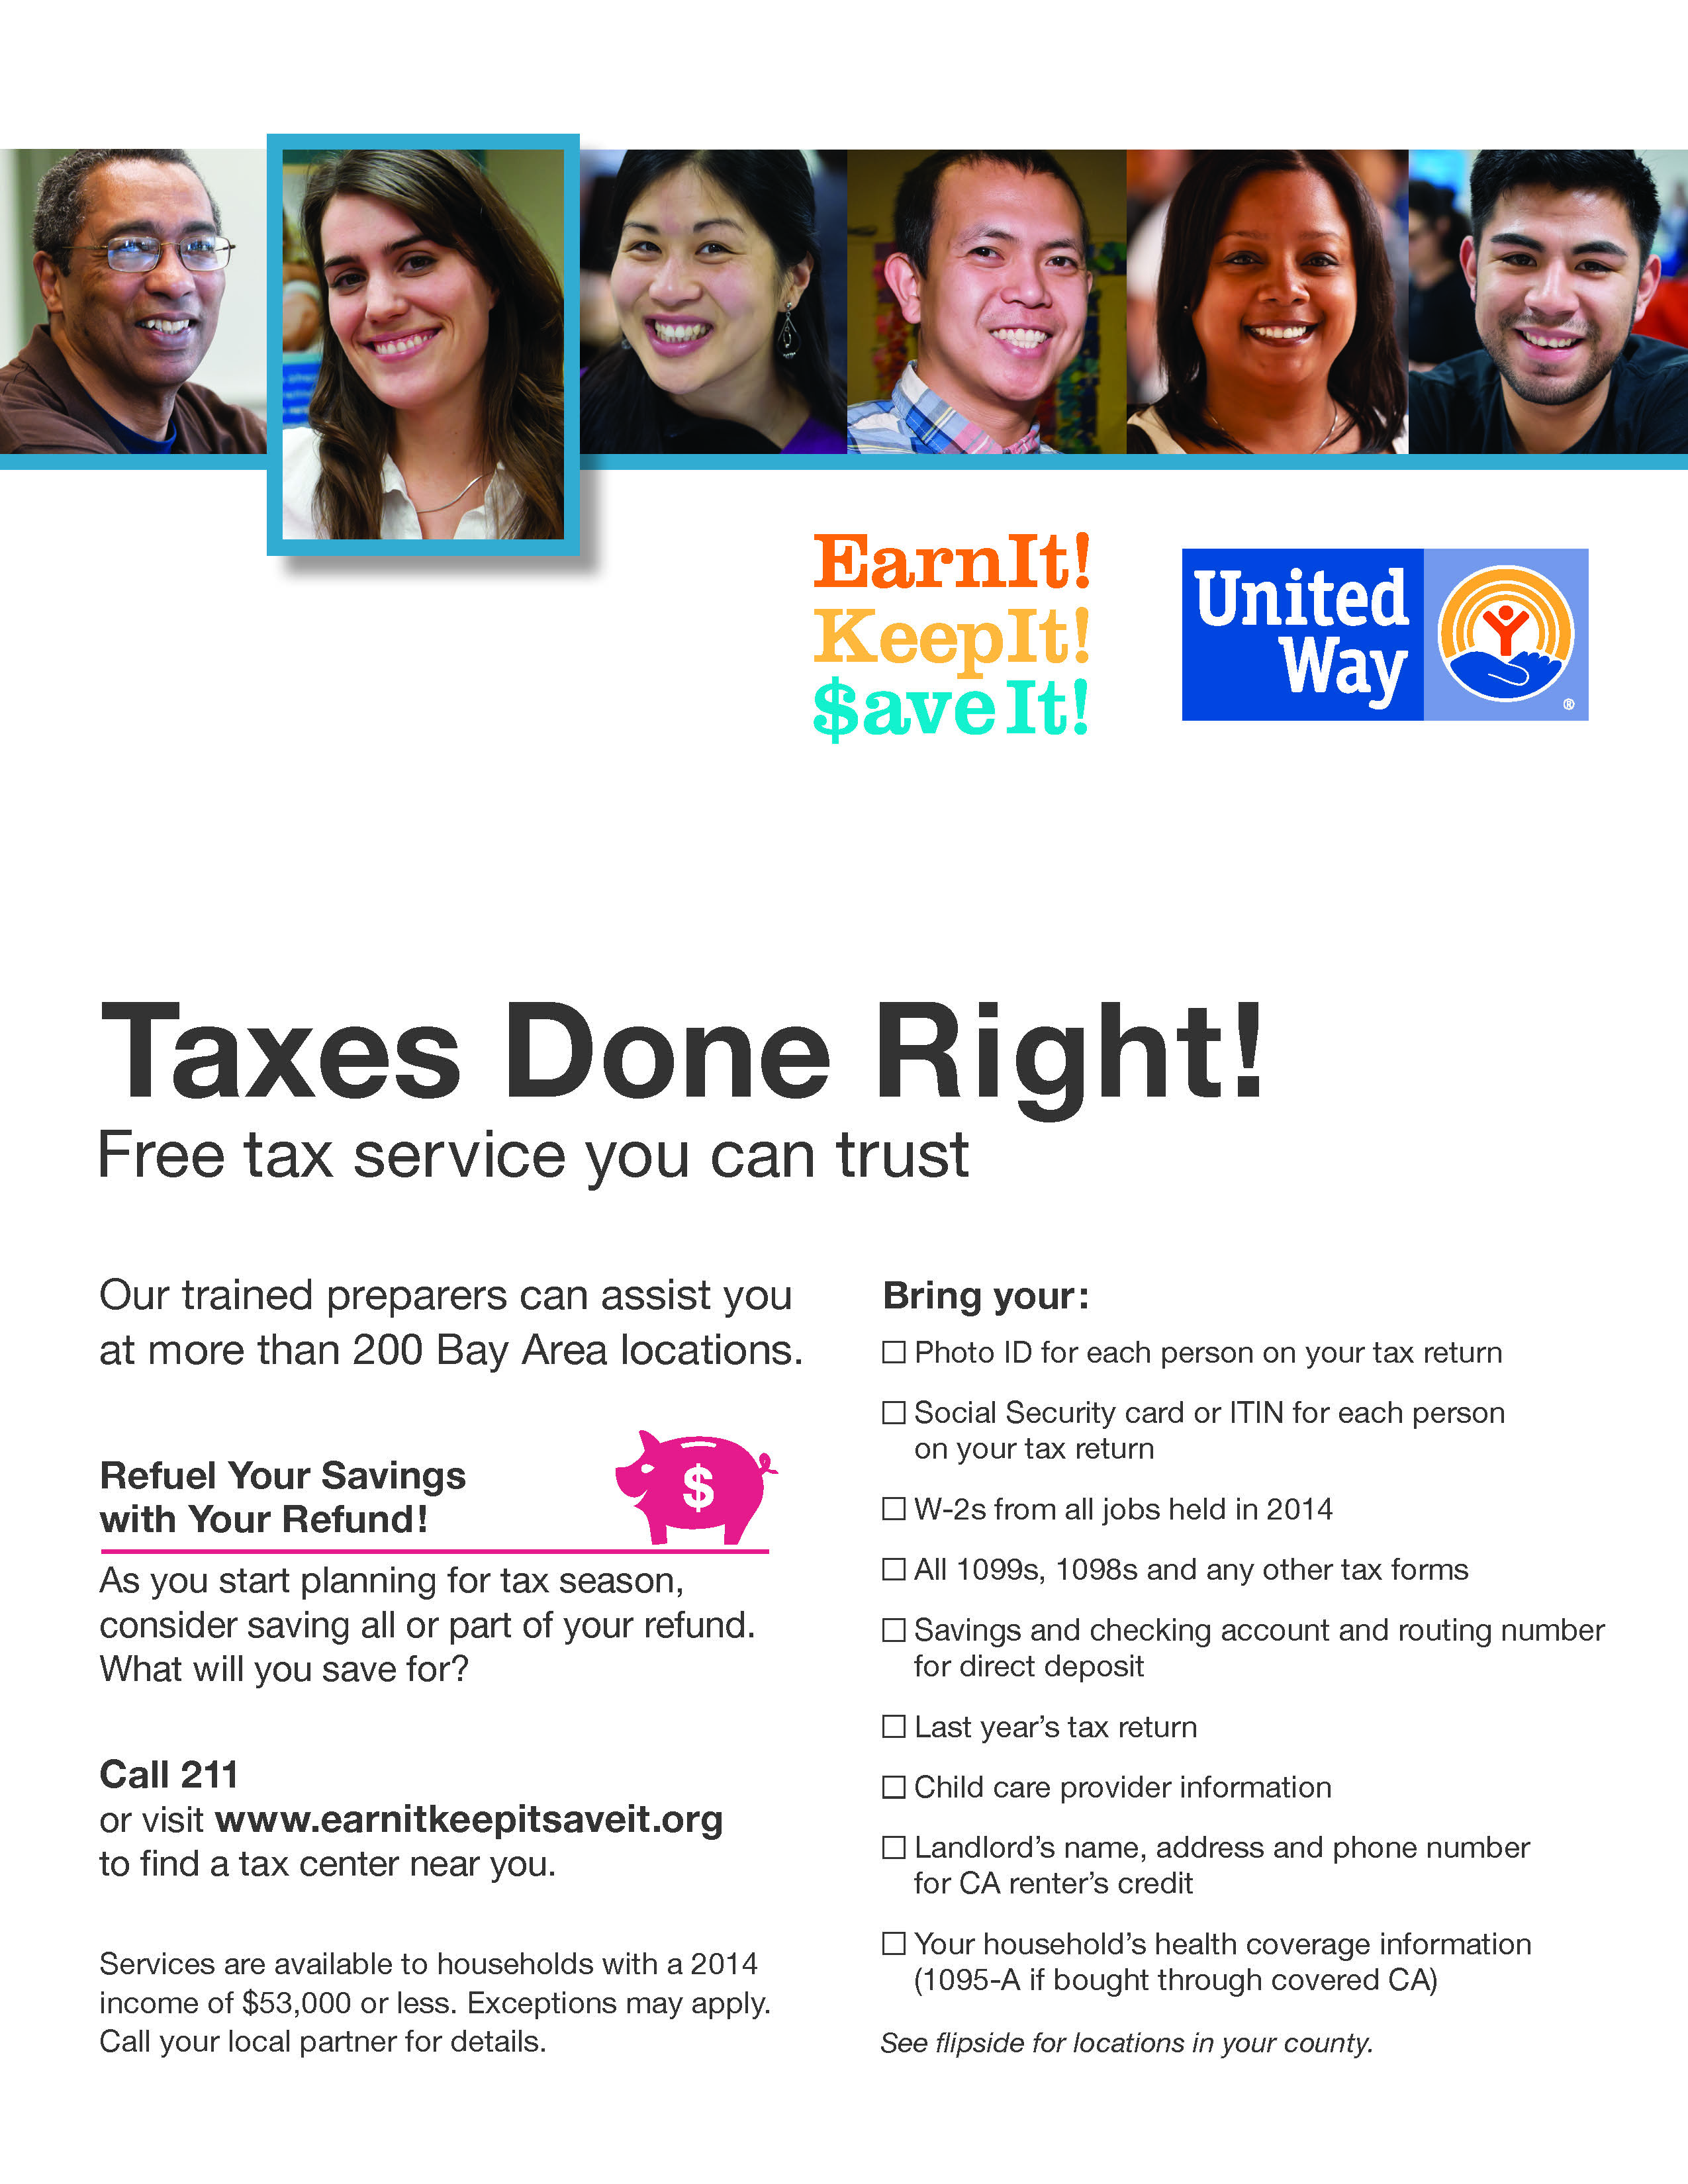 EITC Taxes Done Right